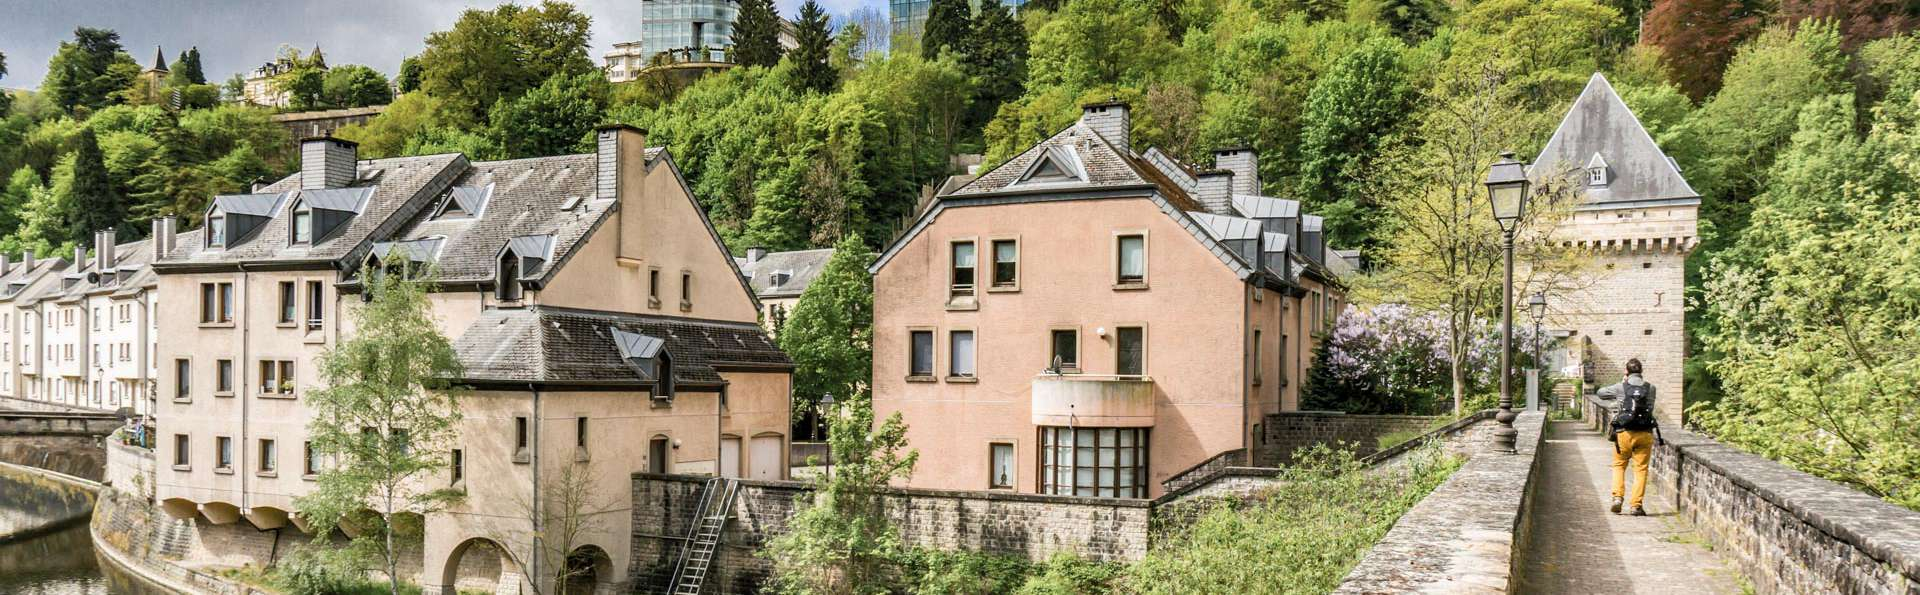 Le Royal Hotels & Resorts - EDIT_LUXEMBOURG_14.jpg